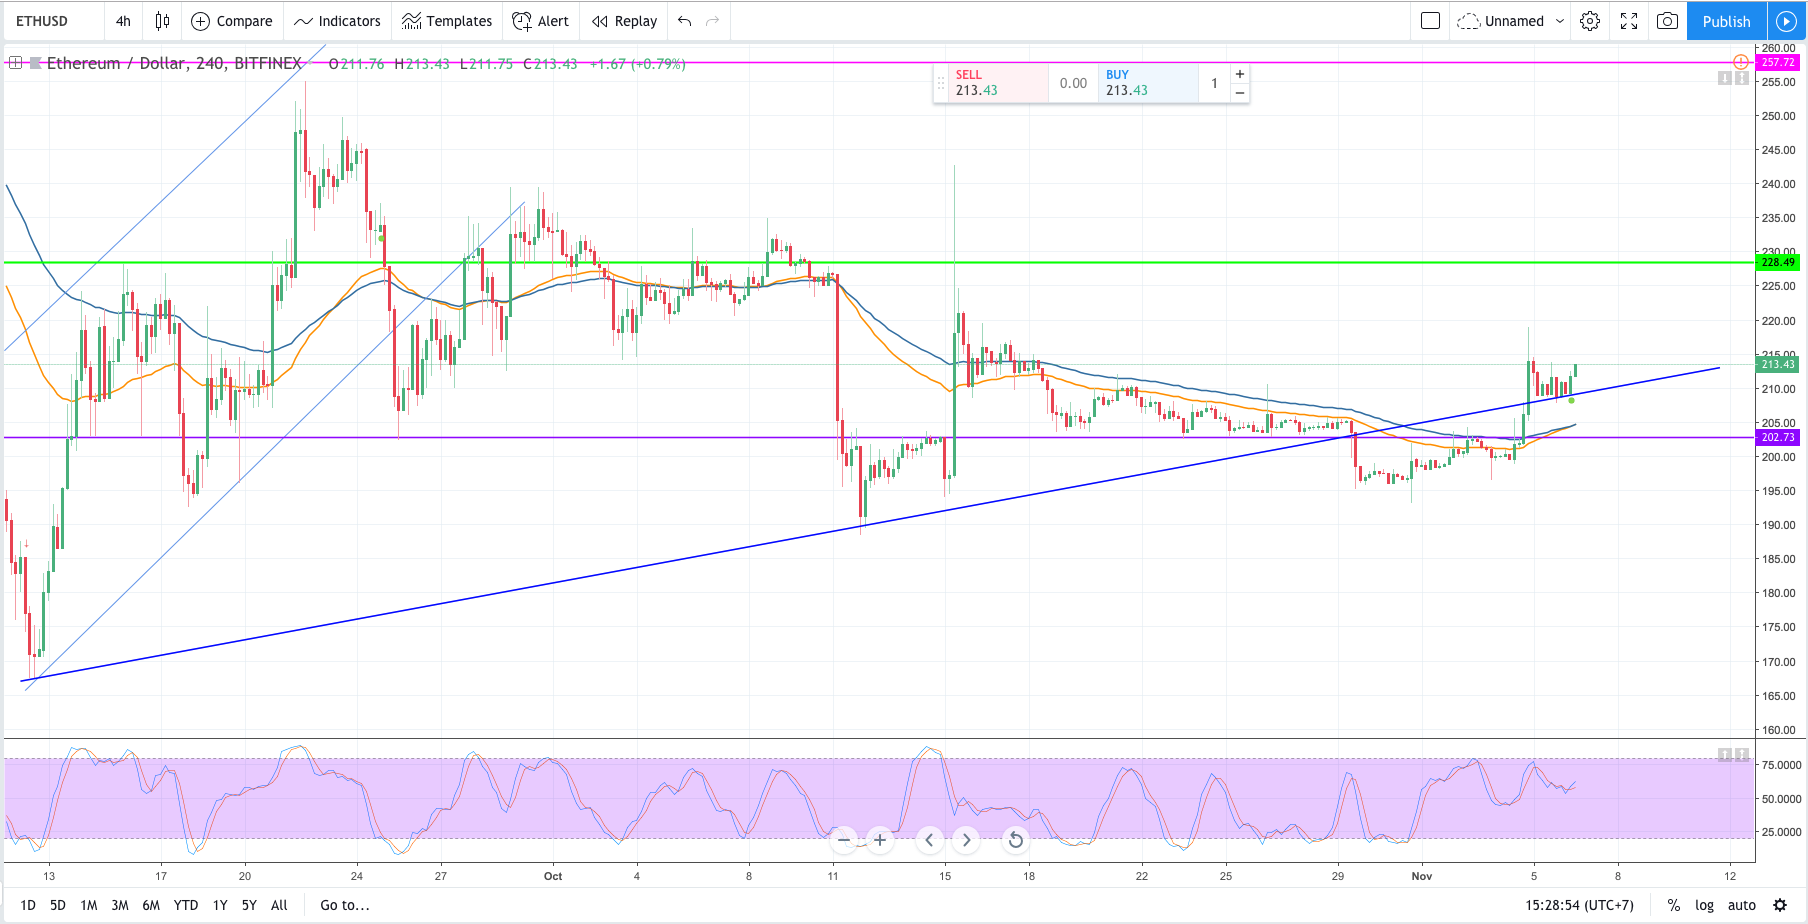 ethusd price forecast, ethereum forcast, eth price analysis, fibonacci retracement